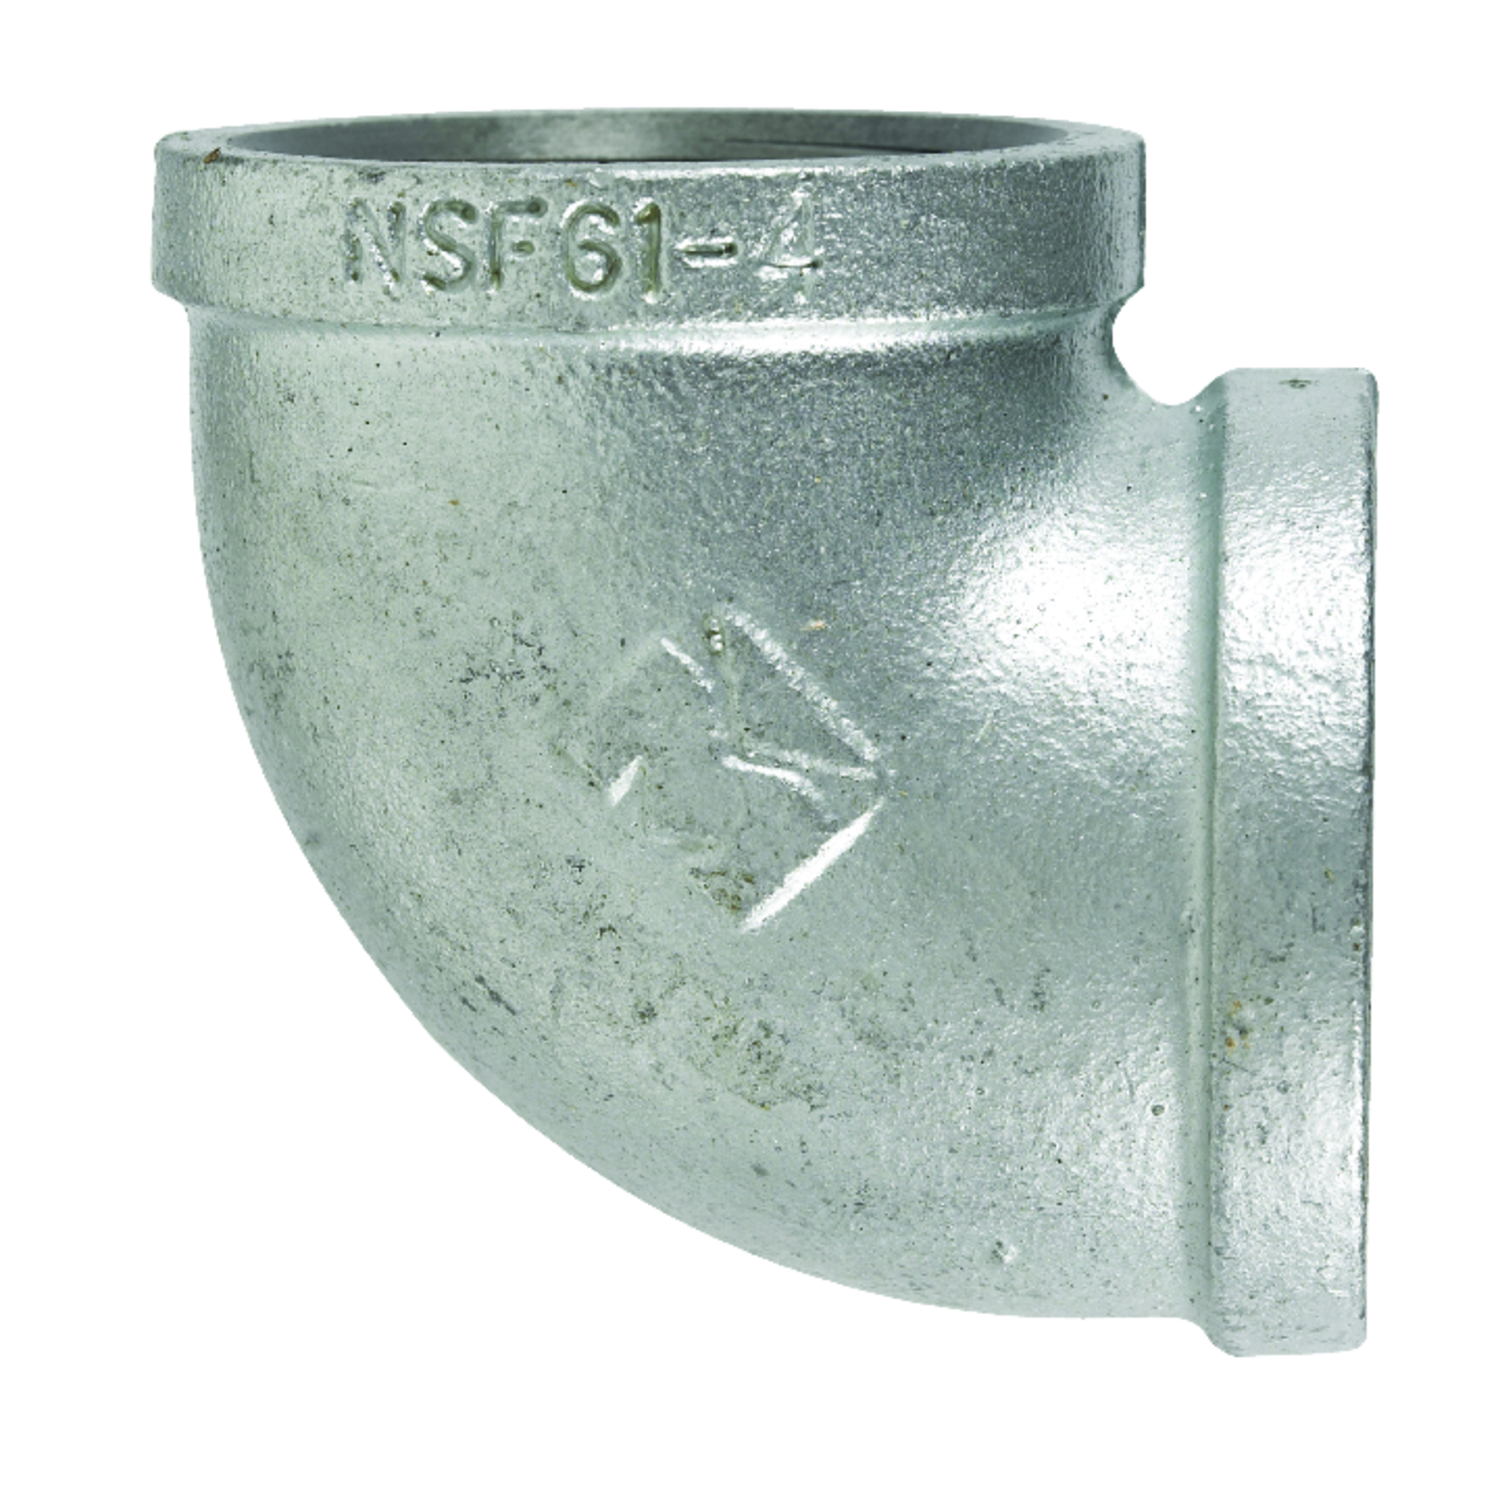 B & K  1/4 in. FPT   x 1/4 in. Dia. FPT  Galvanized  Malleable Iron  Elbow